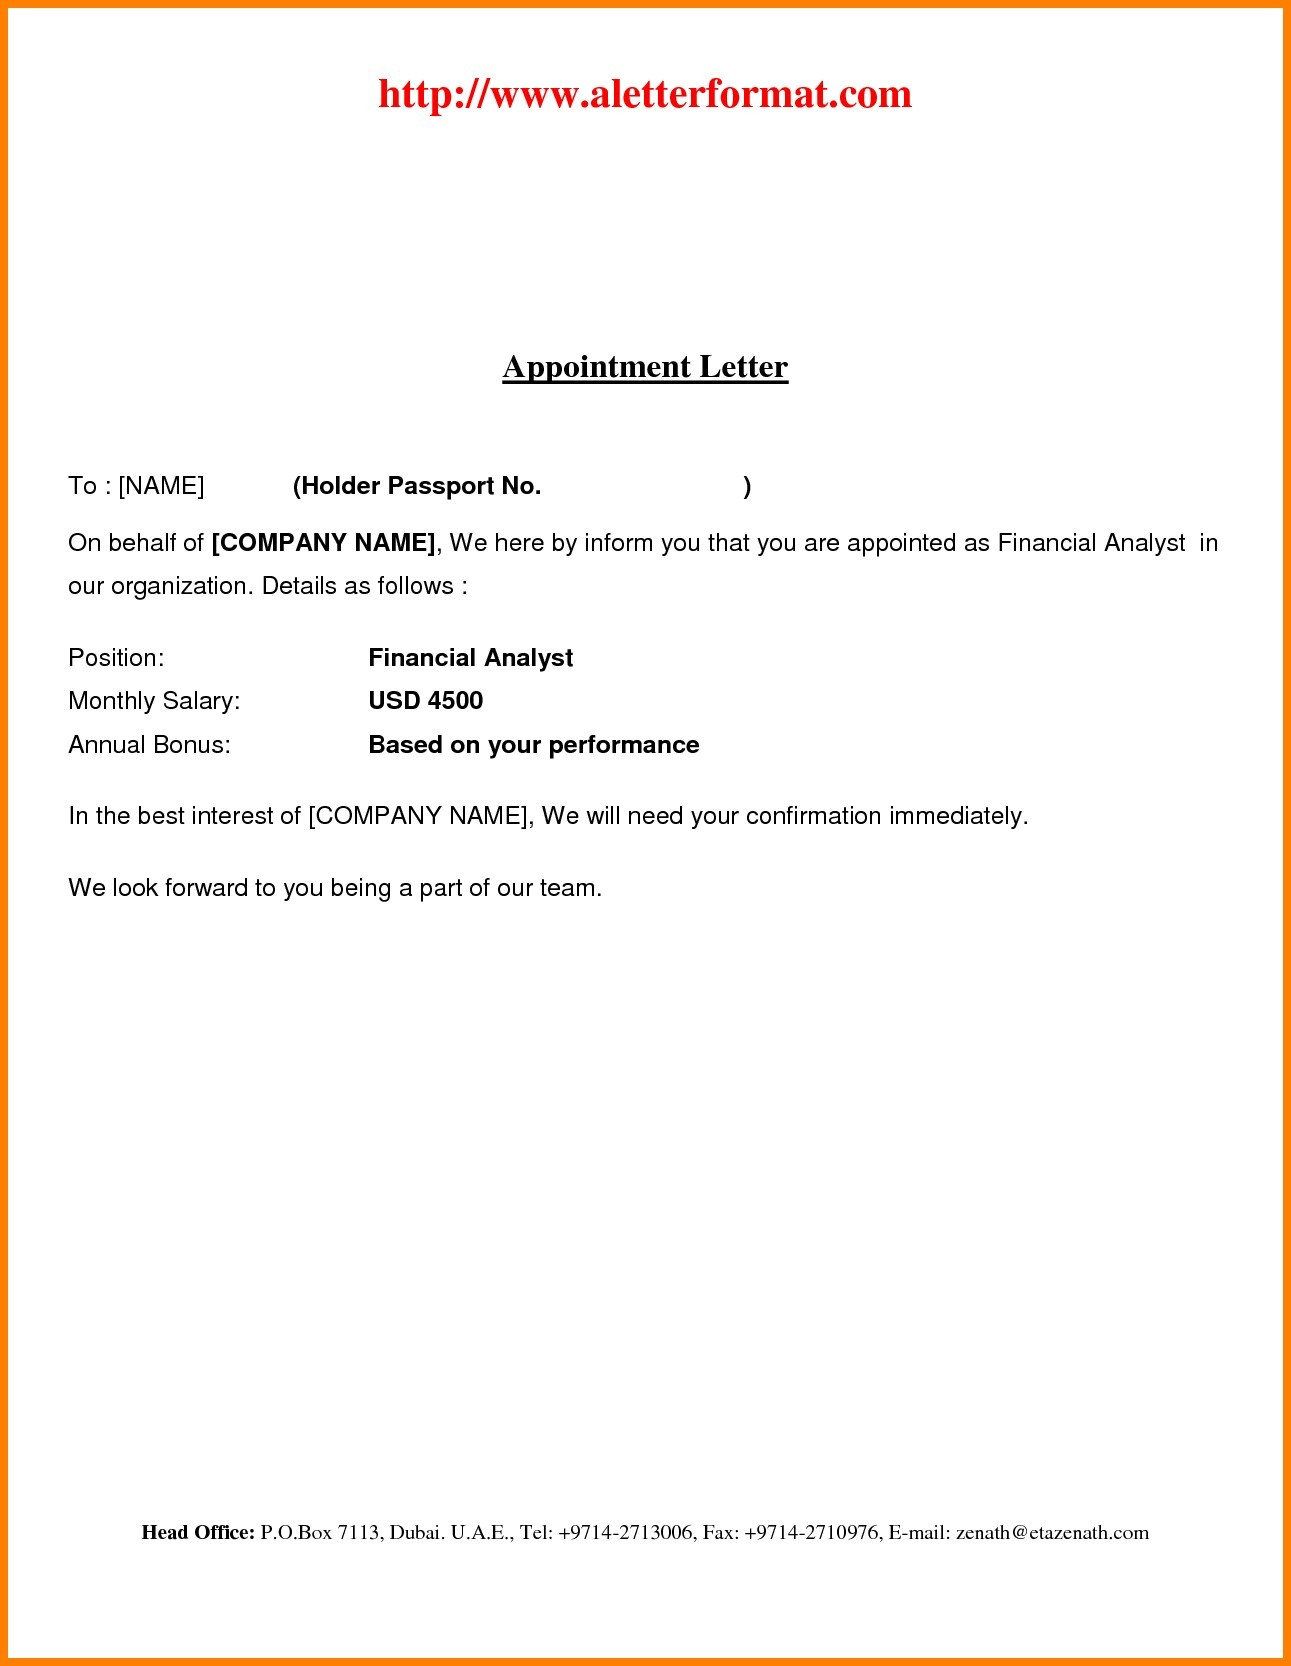 Job Offer Letter Template Free Download - Offer Letter format In Dubai Acurnamedia